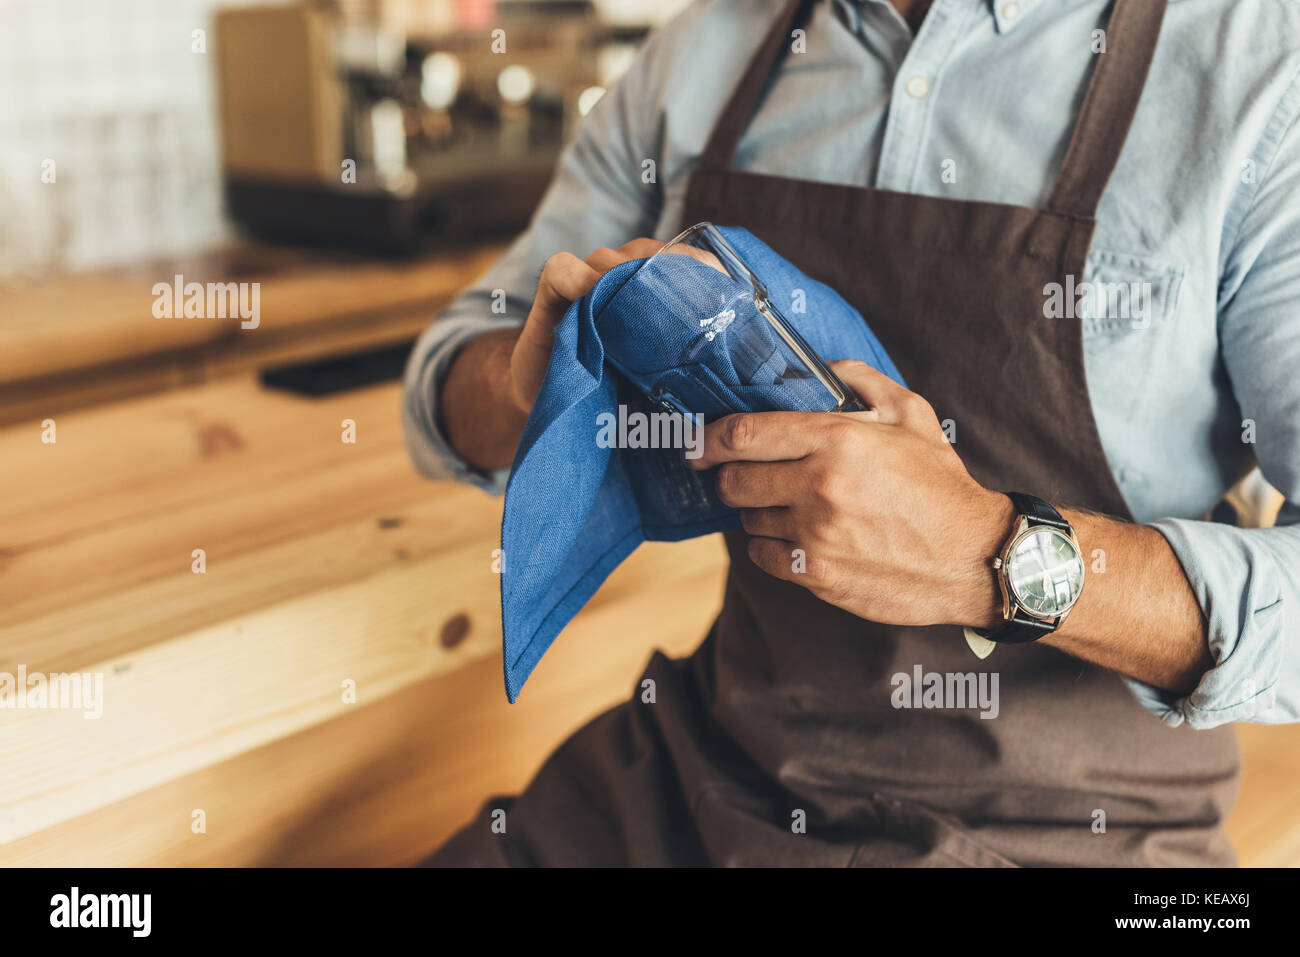 worker cleaning glassware - Stock Image